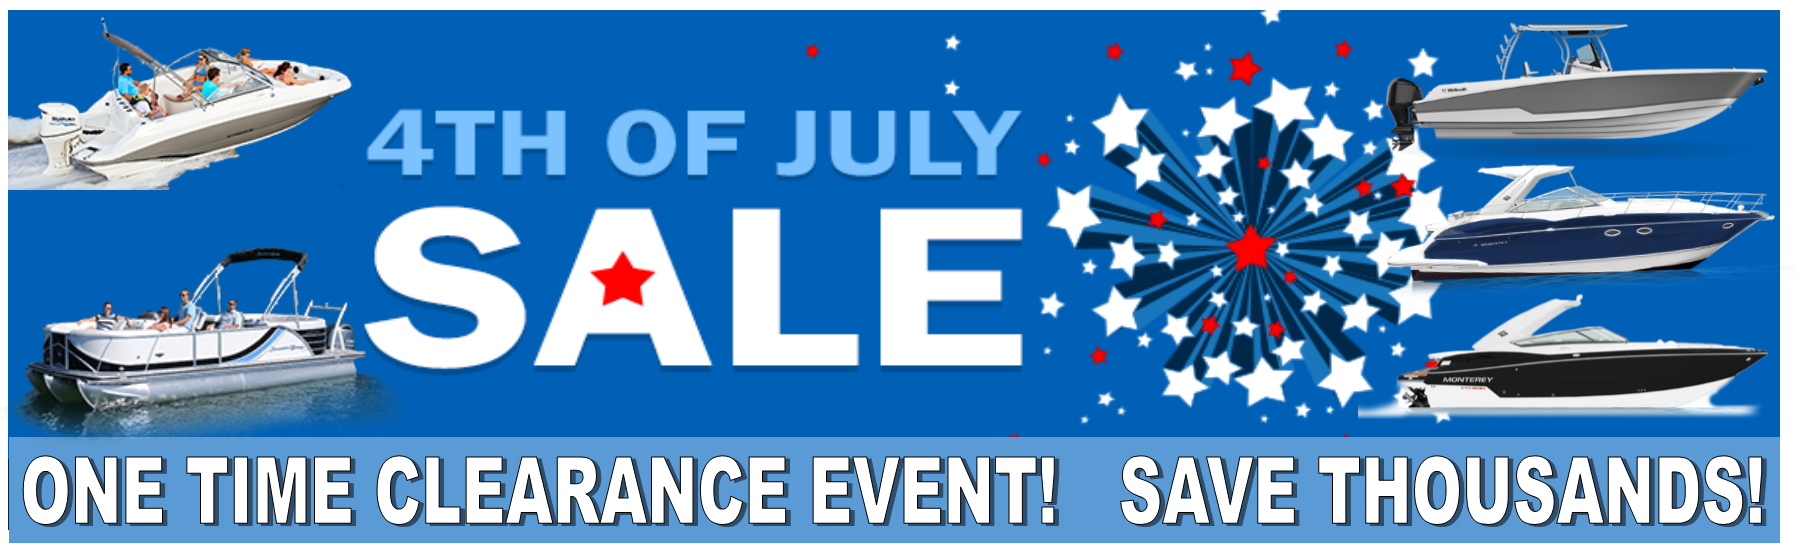 4th of July Boat Sale